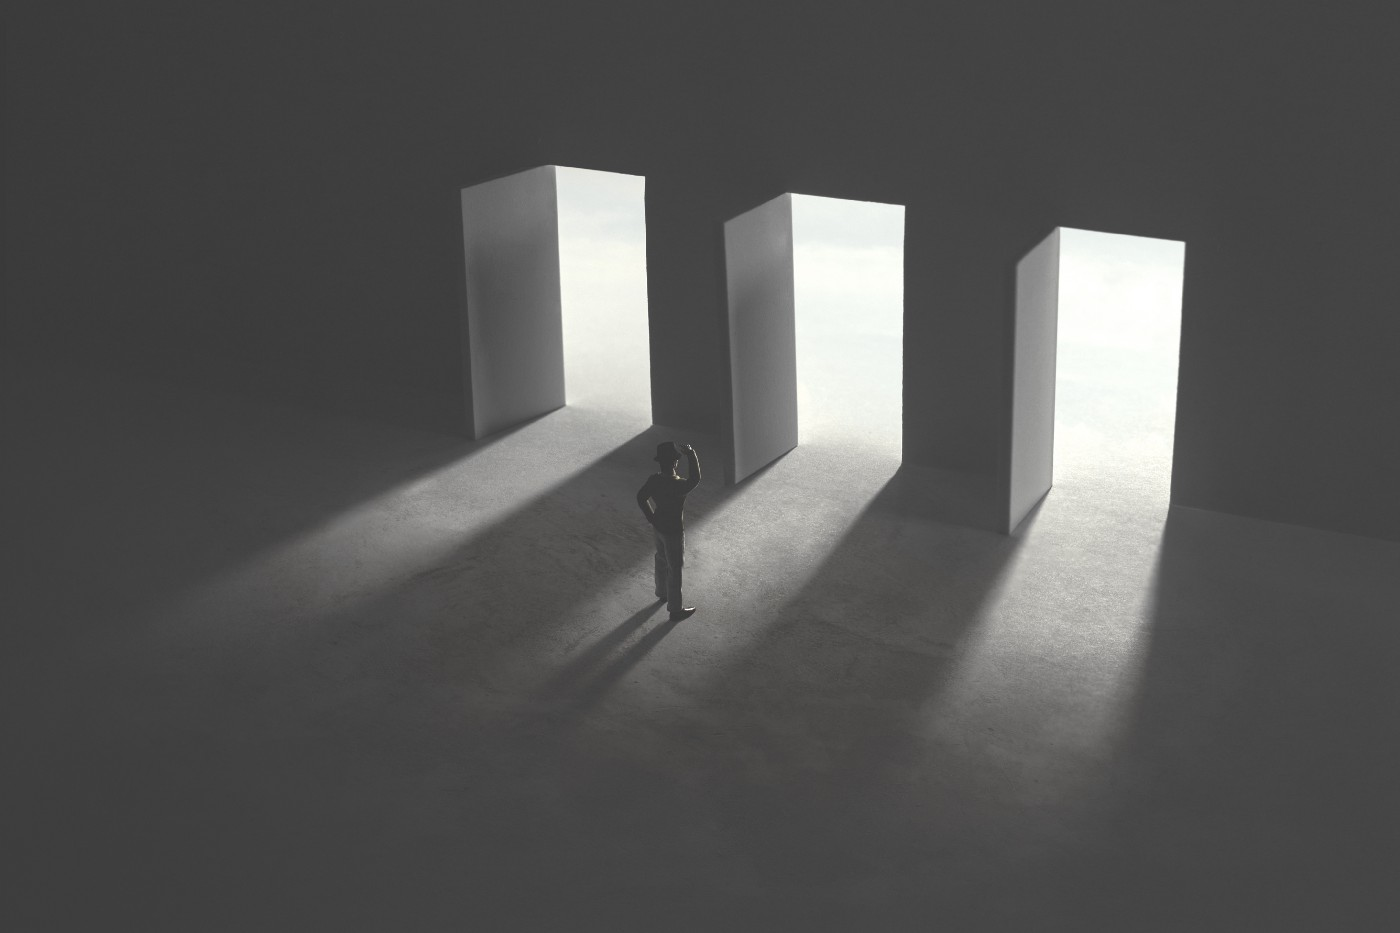 A silhouette of a business man contemplating while standing in front of three open doors.